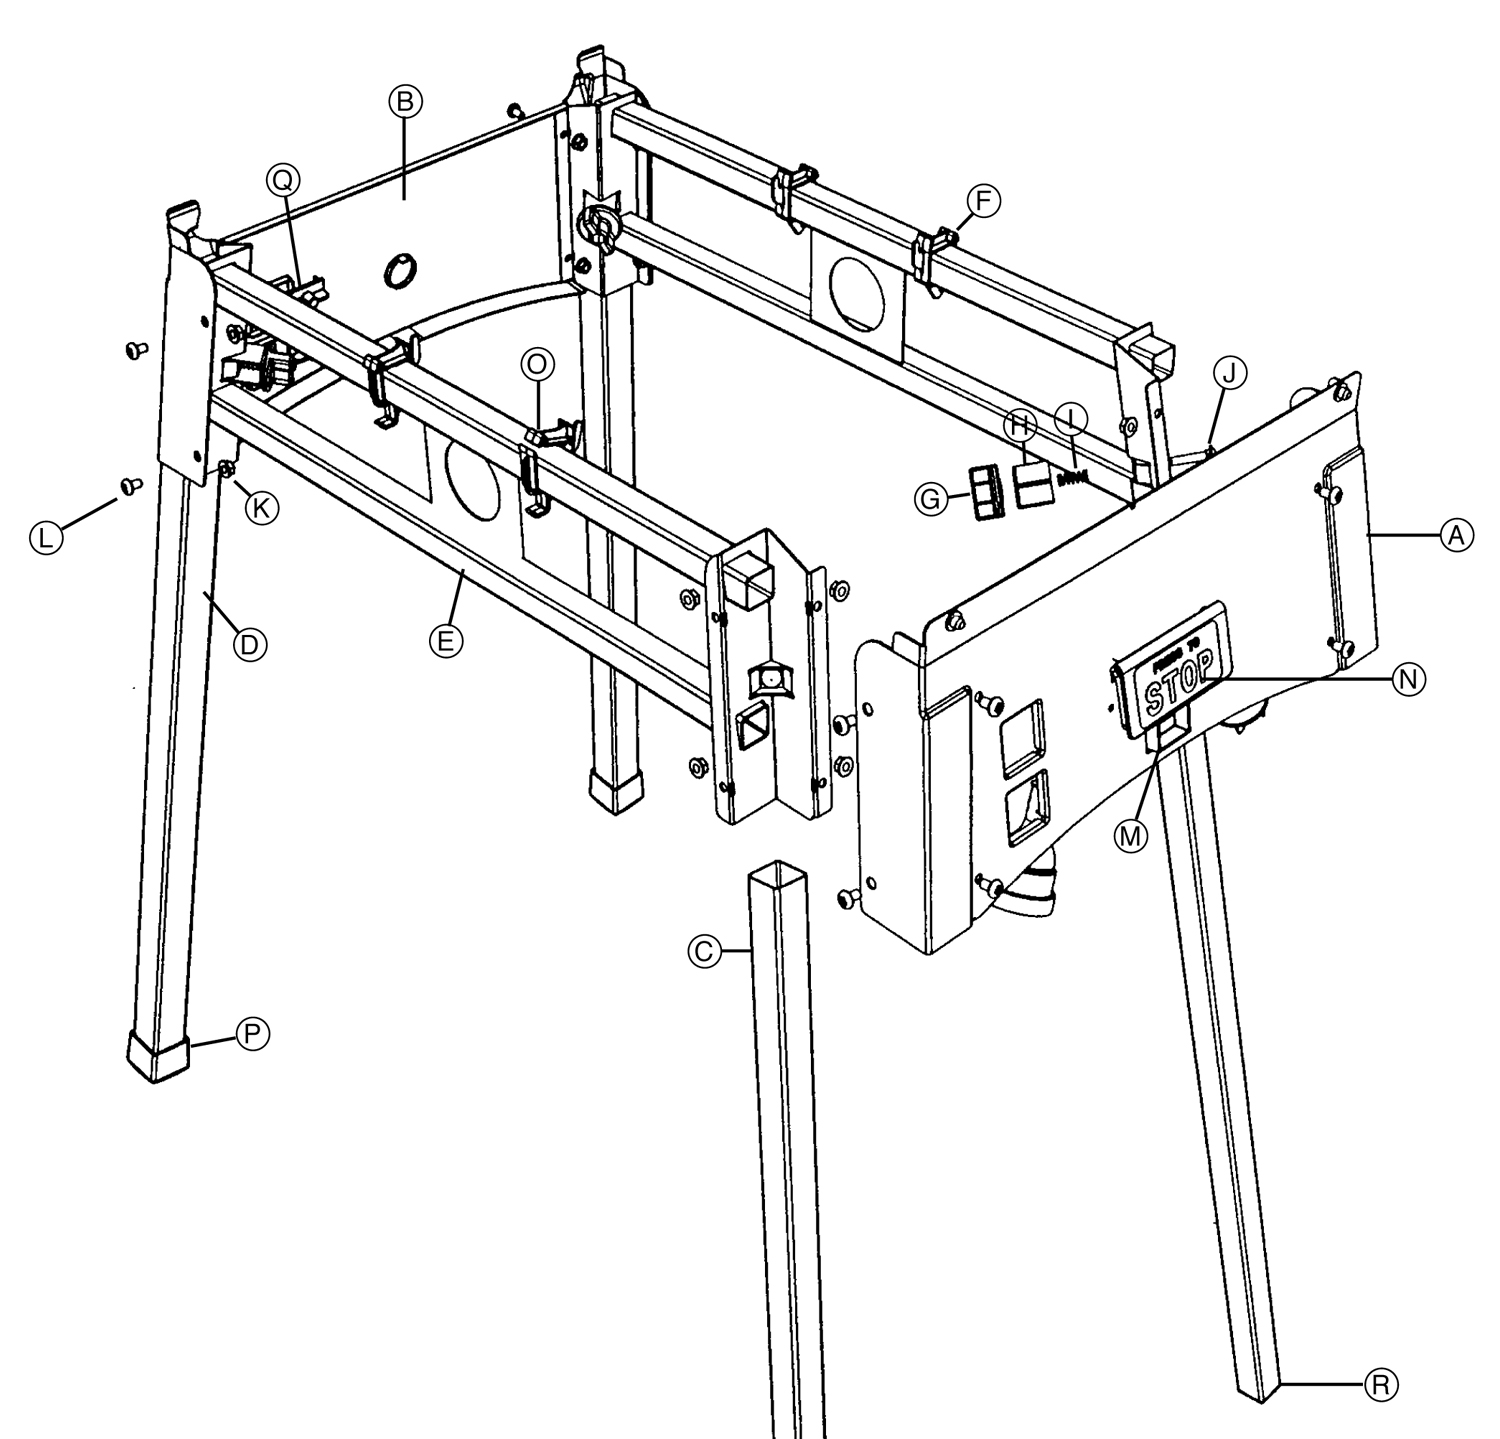 Tool Spares Online Router Stand